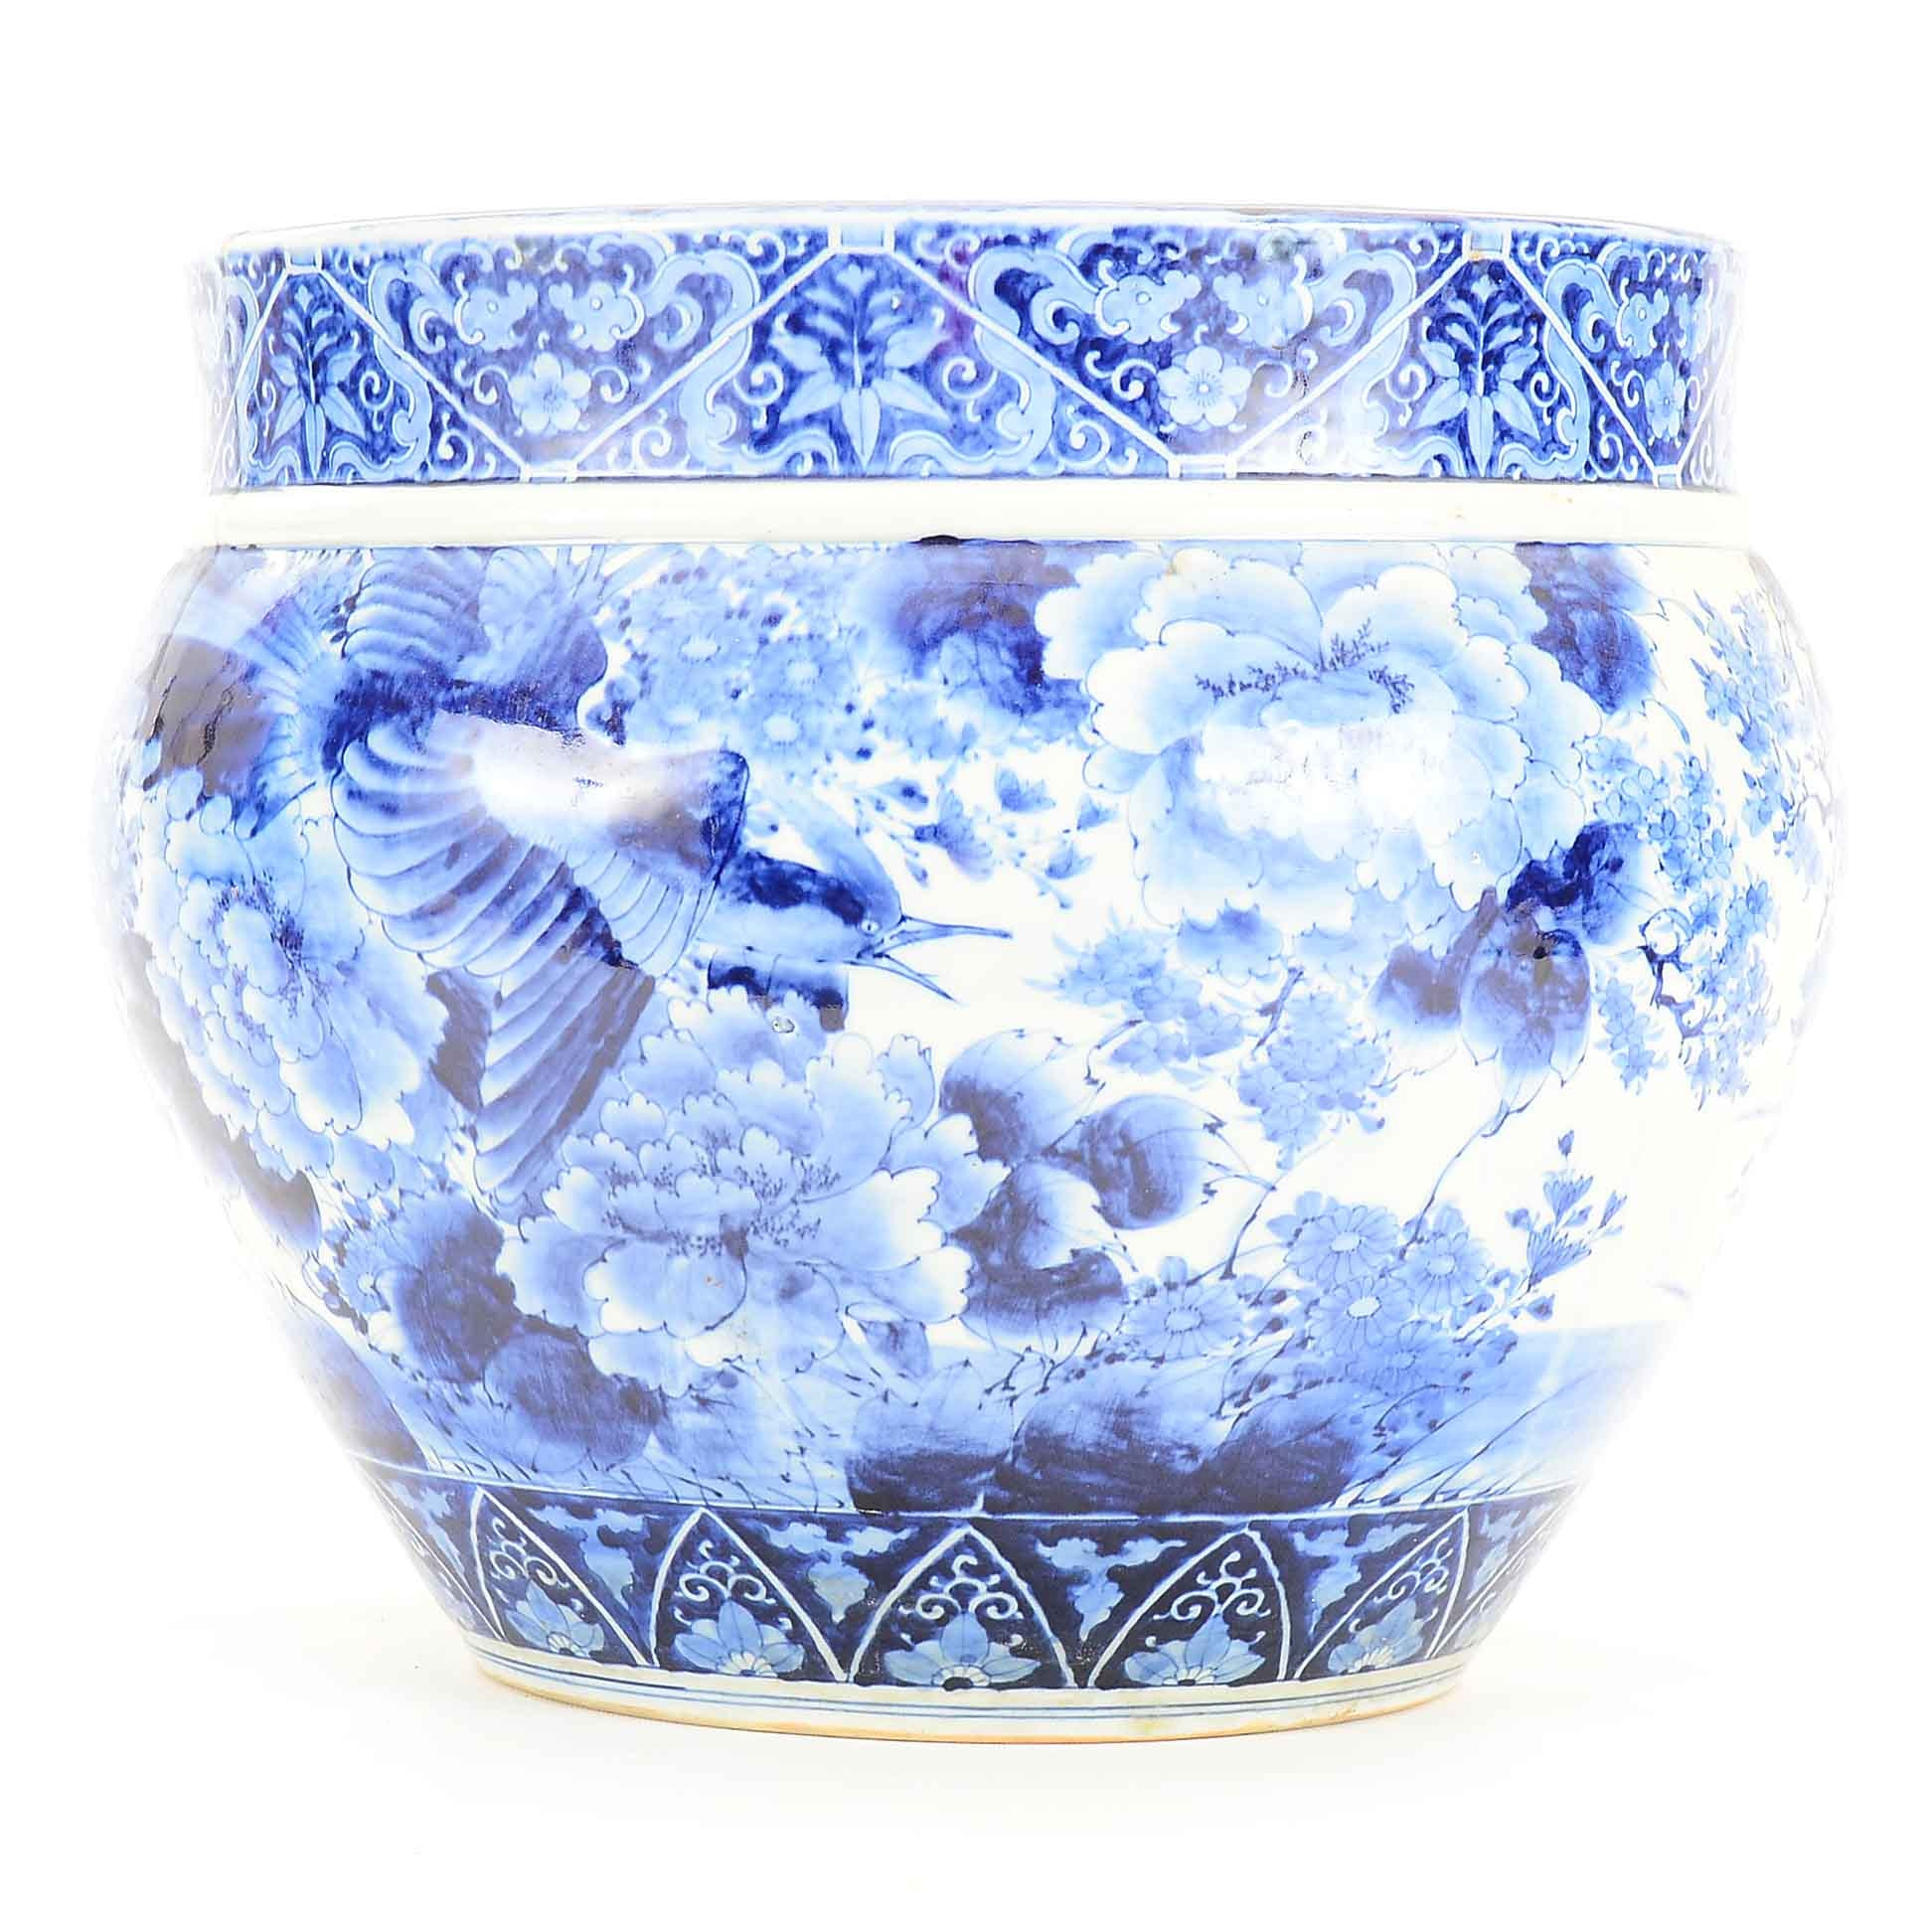 Chinese Blue and White Porcelain Fishbowl Planter